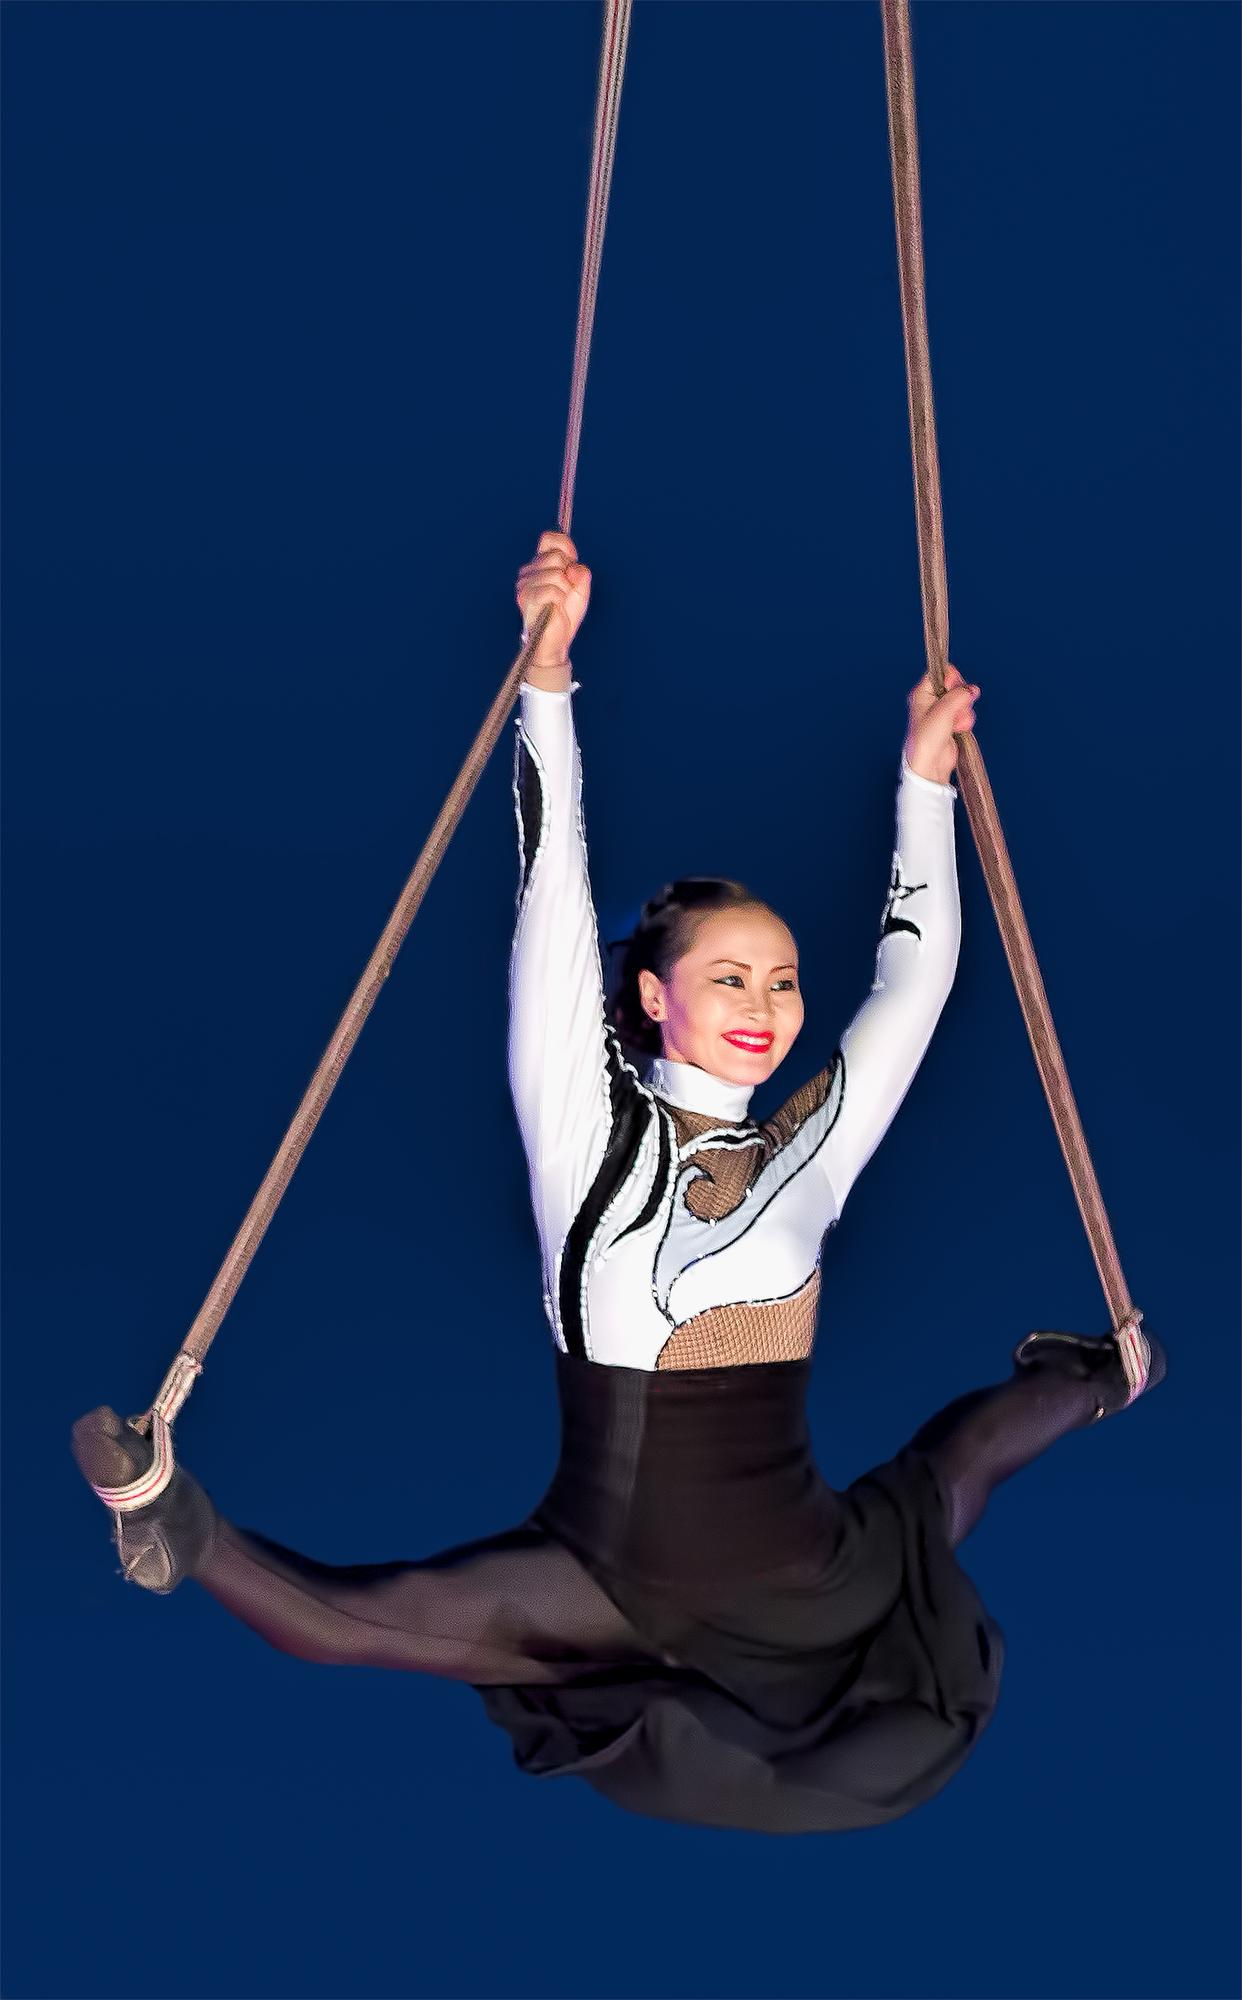 Girl on Ropes.jpg